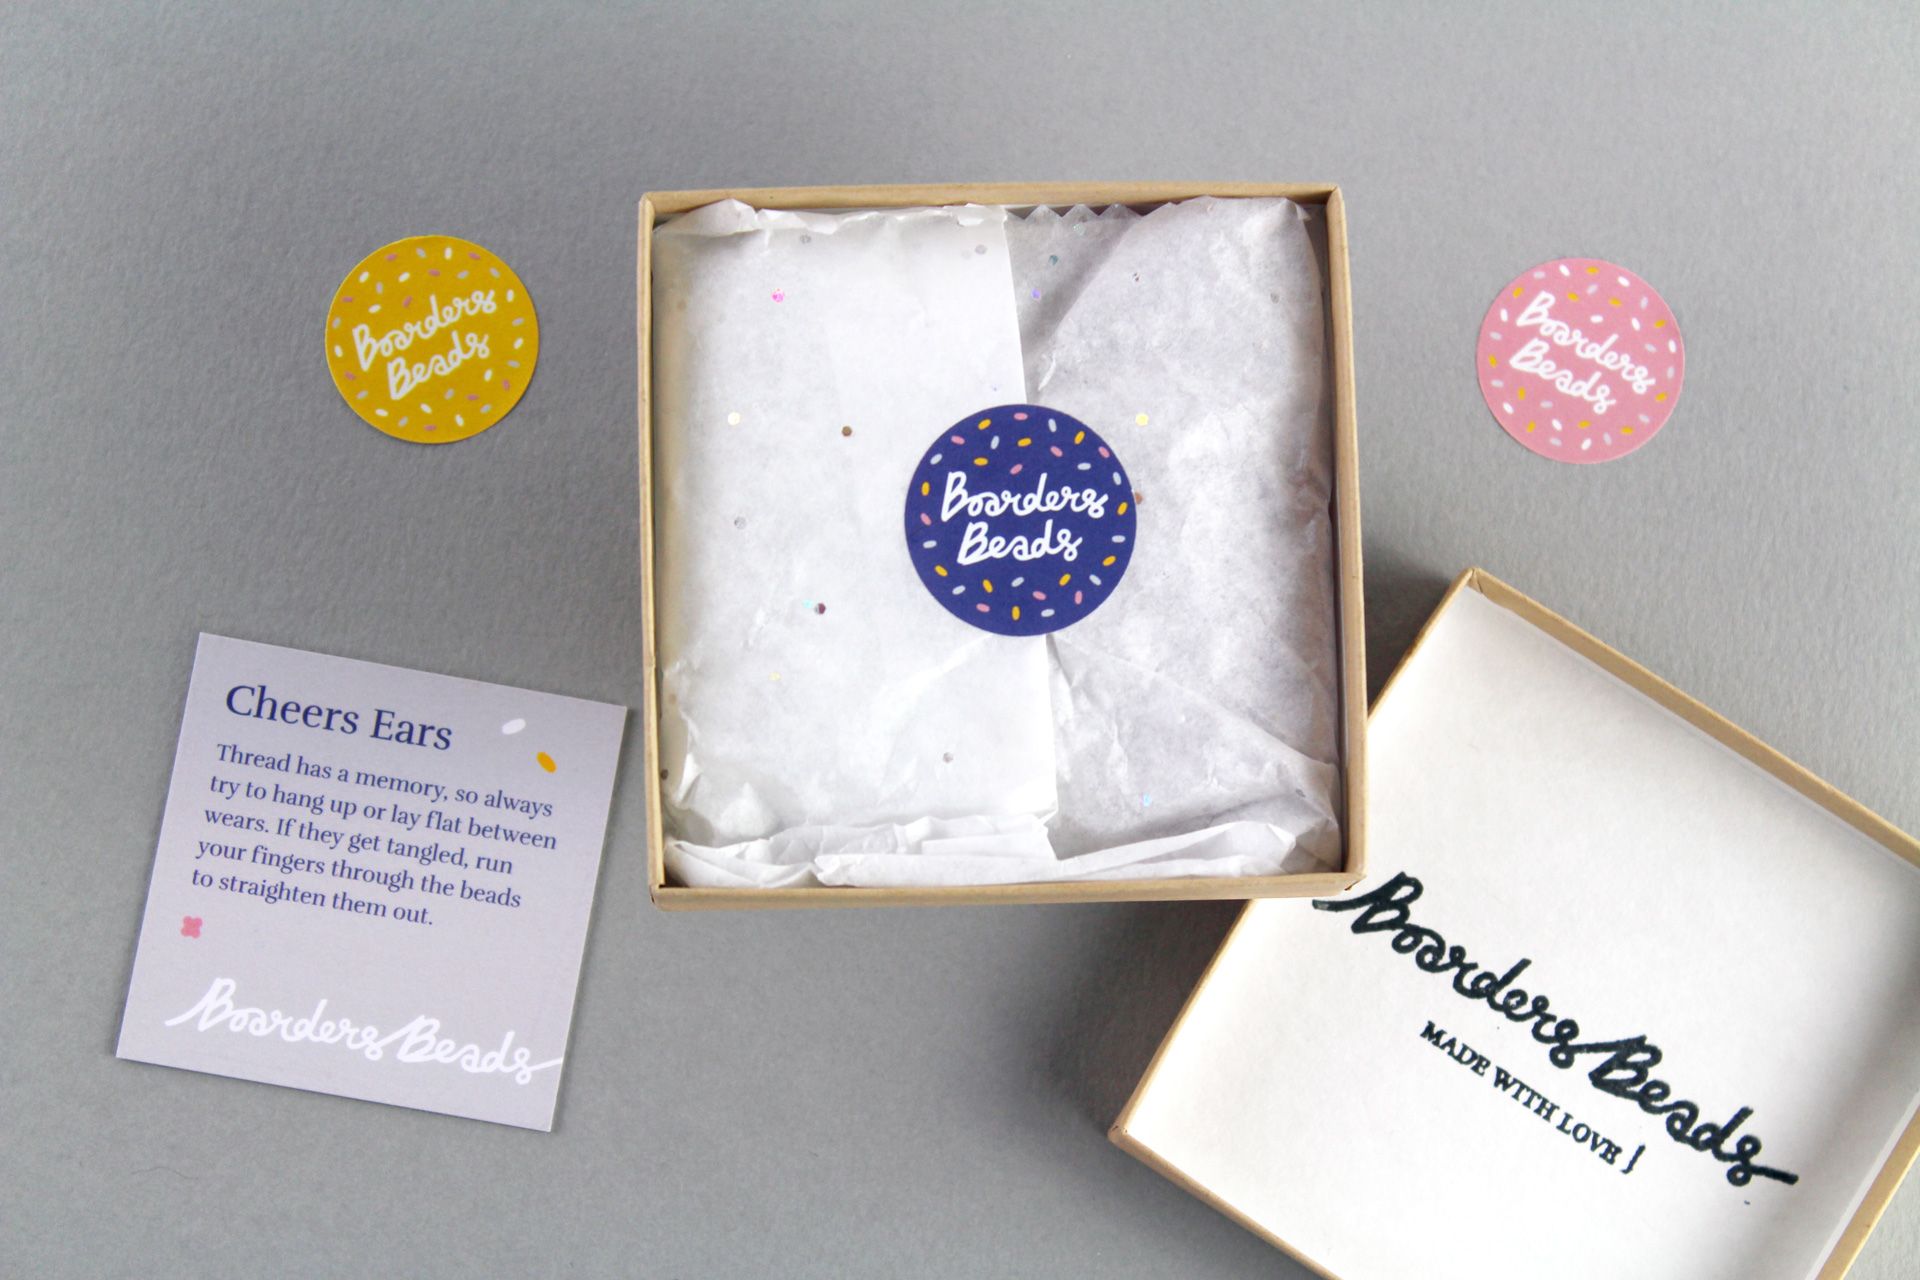 Brand stationery and packaging for Boarders Beads